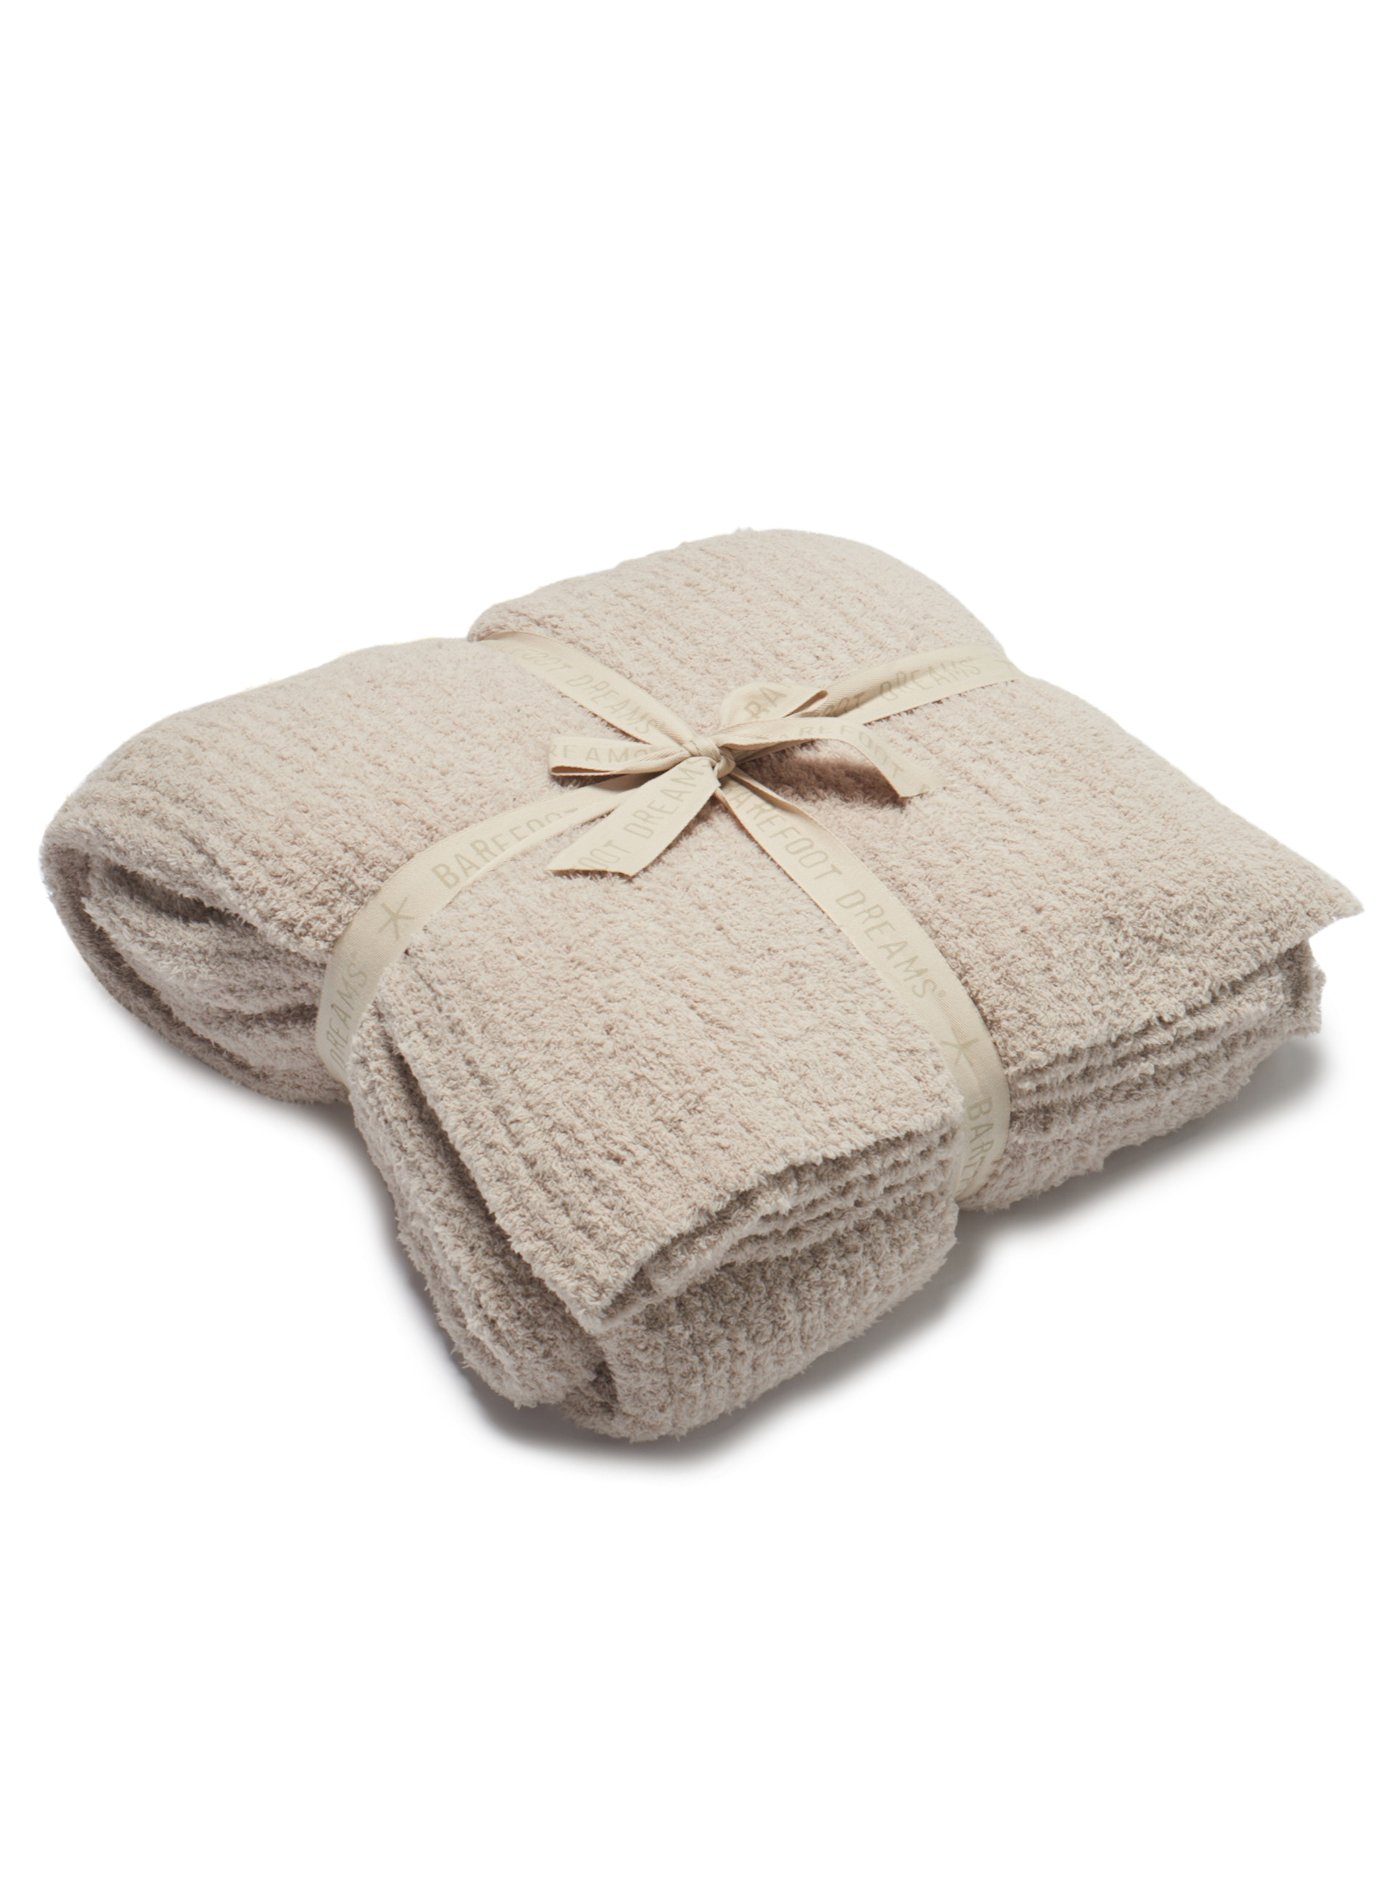 Barefoot Dreams CozyChic Ribbed Bed Blanket King Stone by Barefoot Dreams